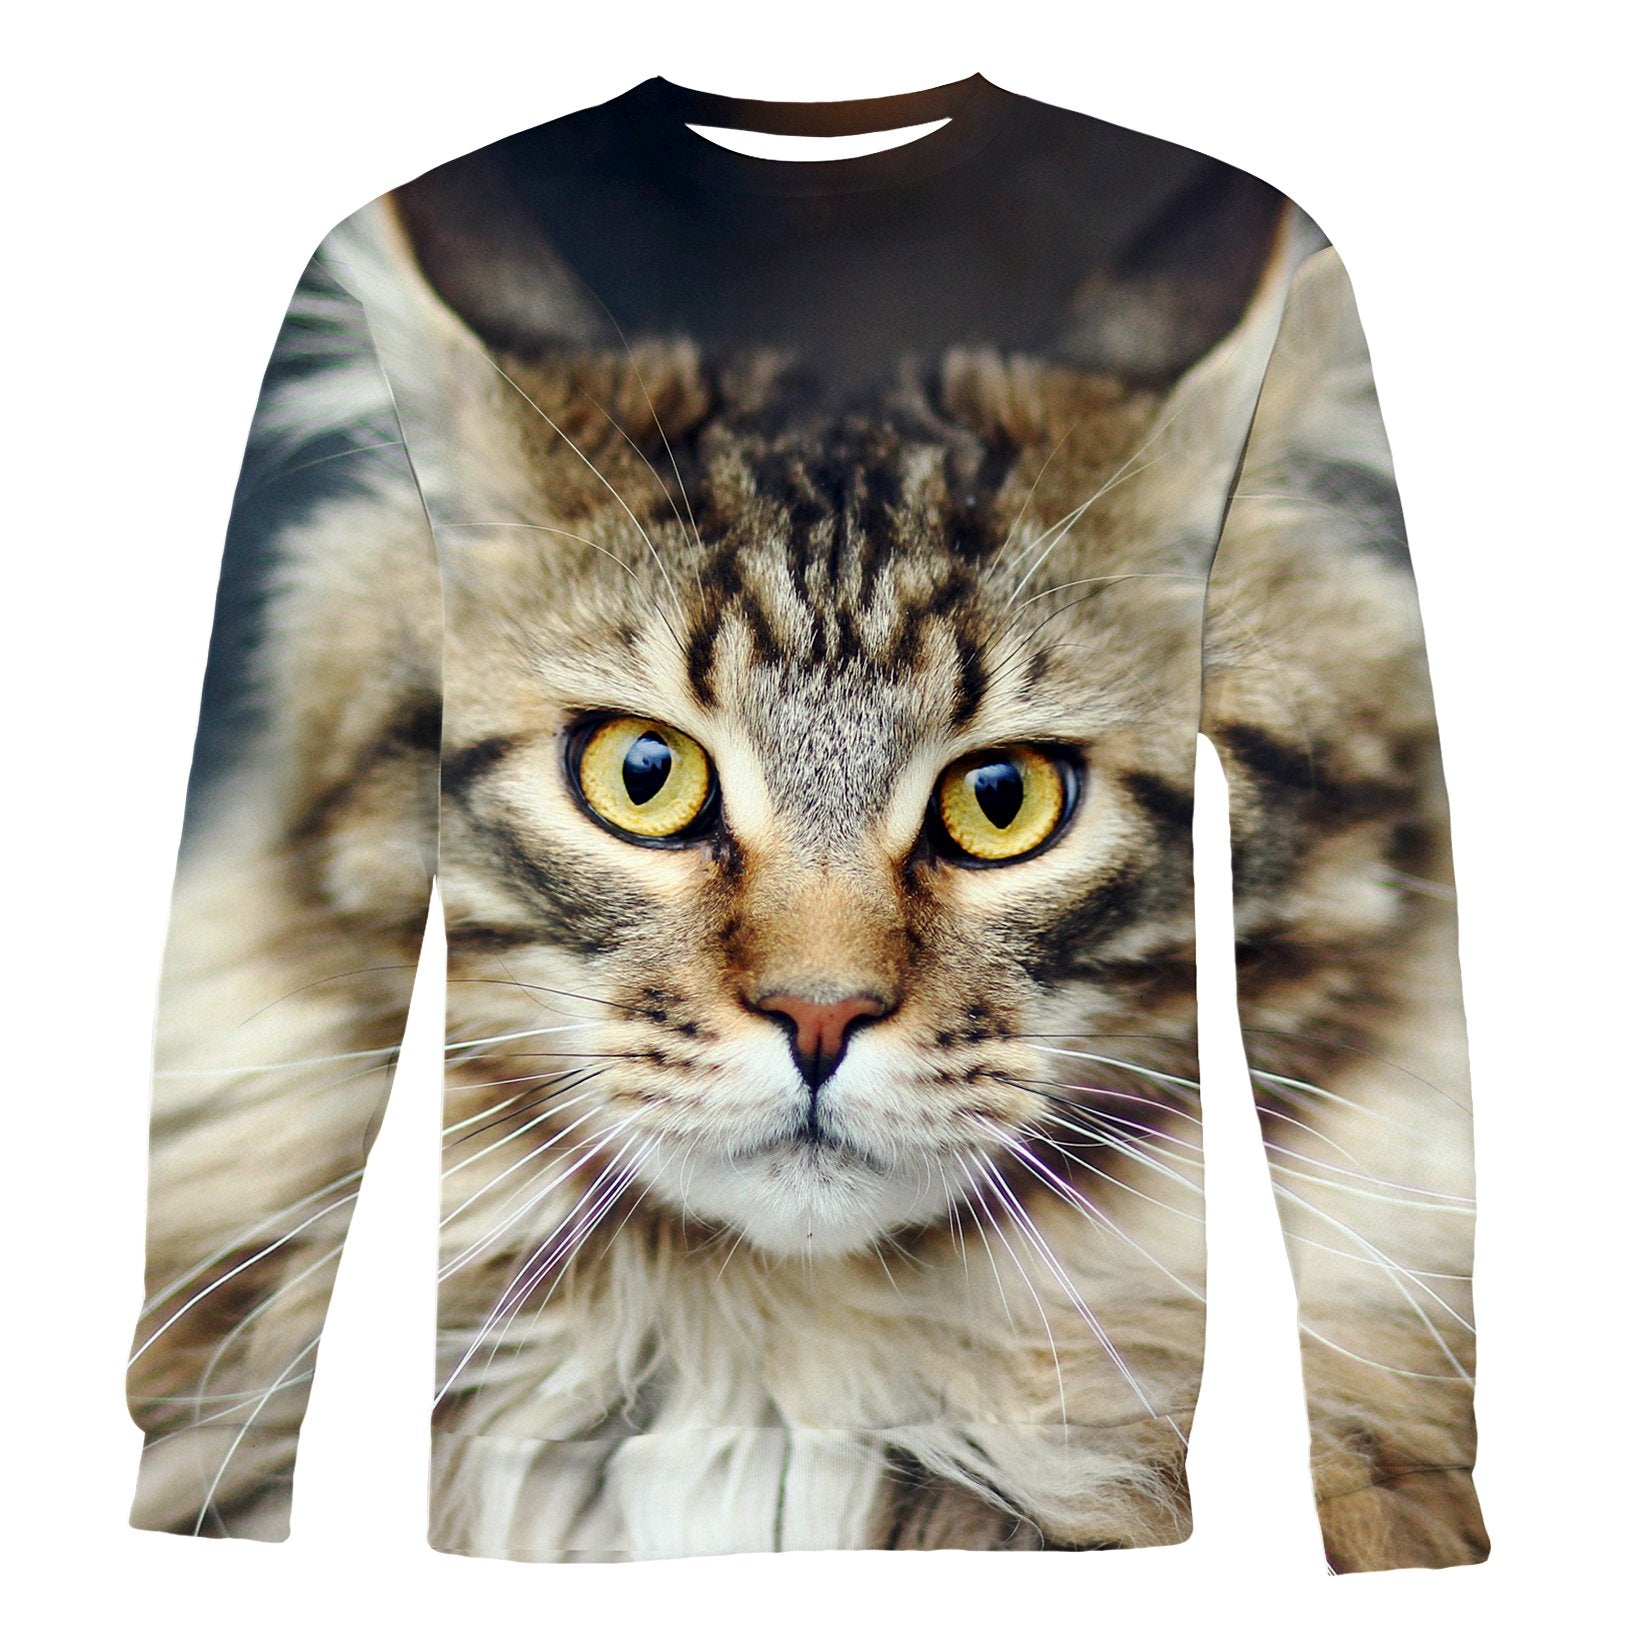 Regal Cat printed all over in HD on premium fabric. Handmade in California.